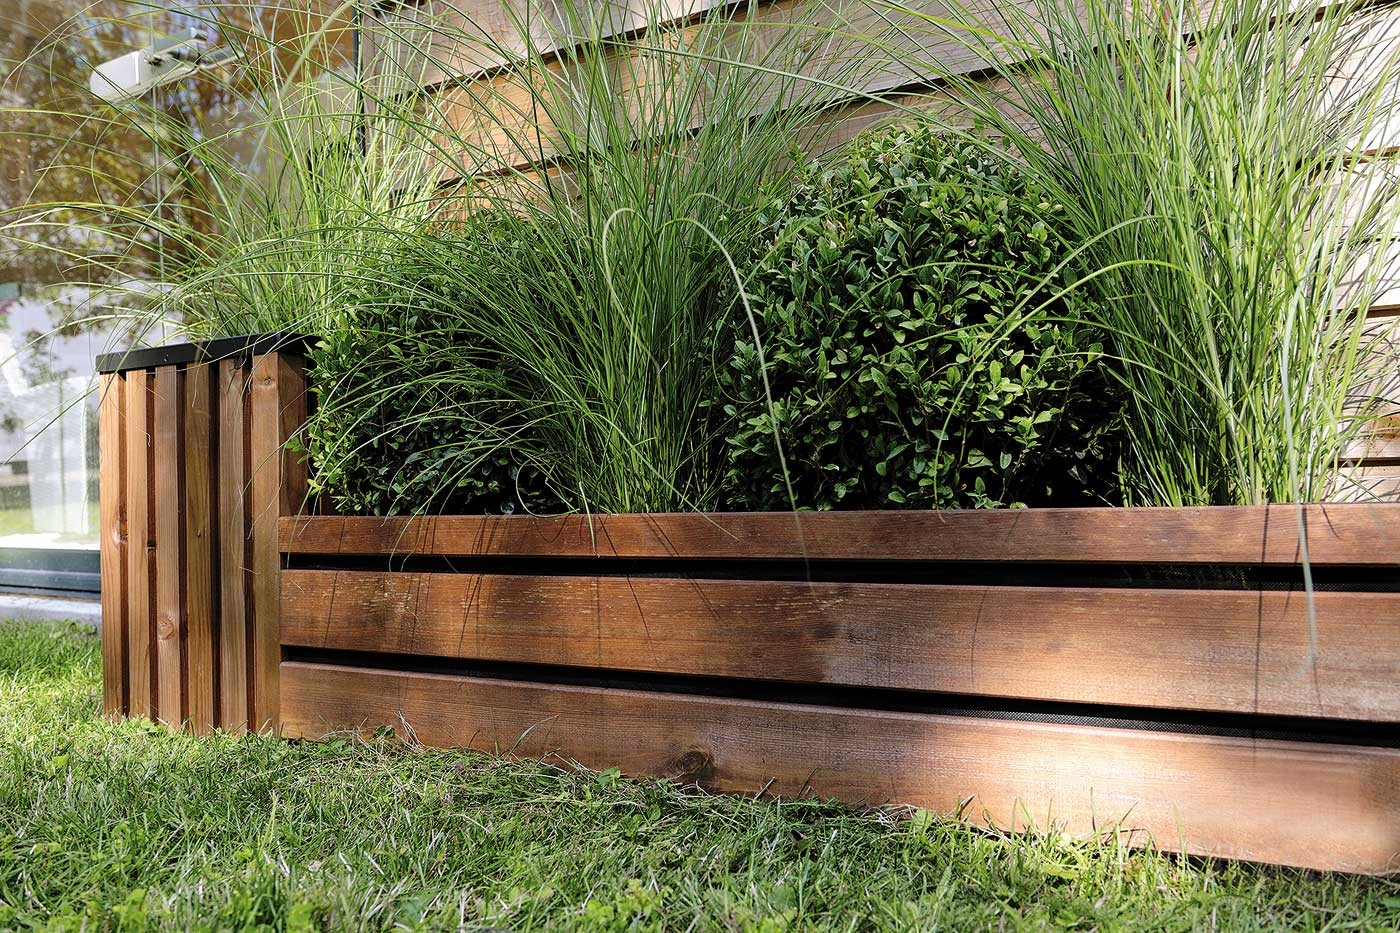 bordure bois planter 23 43 x 100 cm